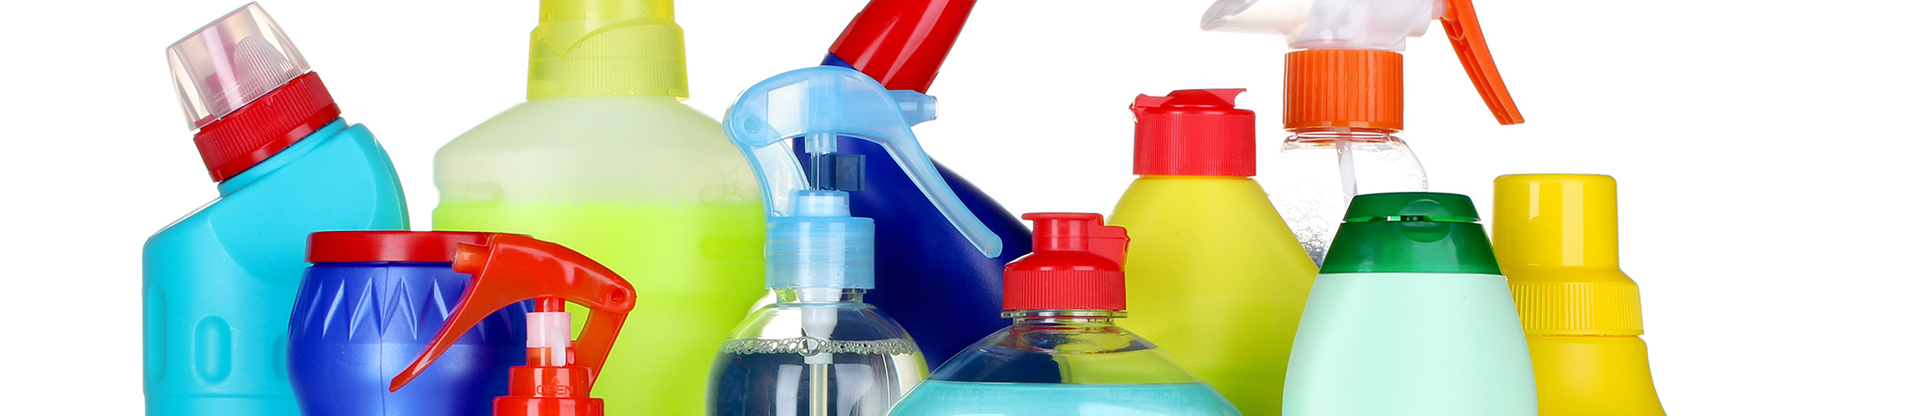 Ecsa chemicals detergents